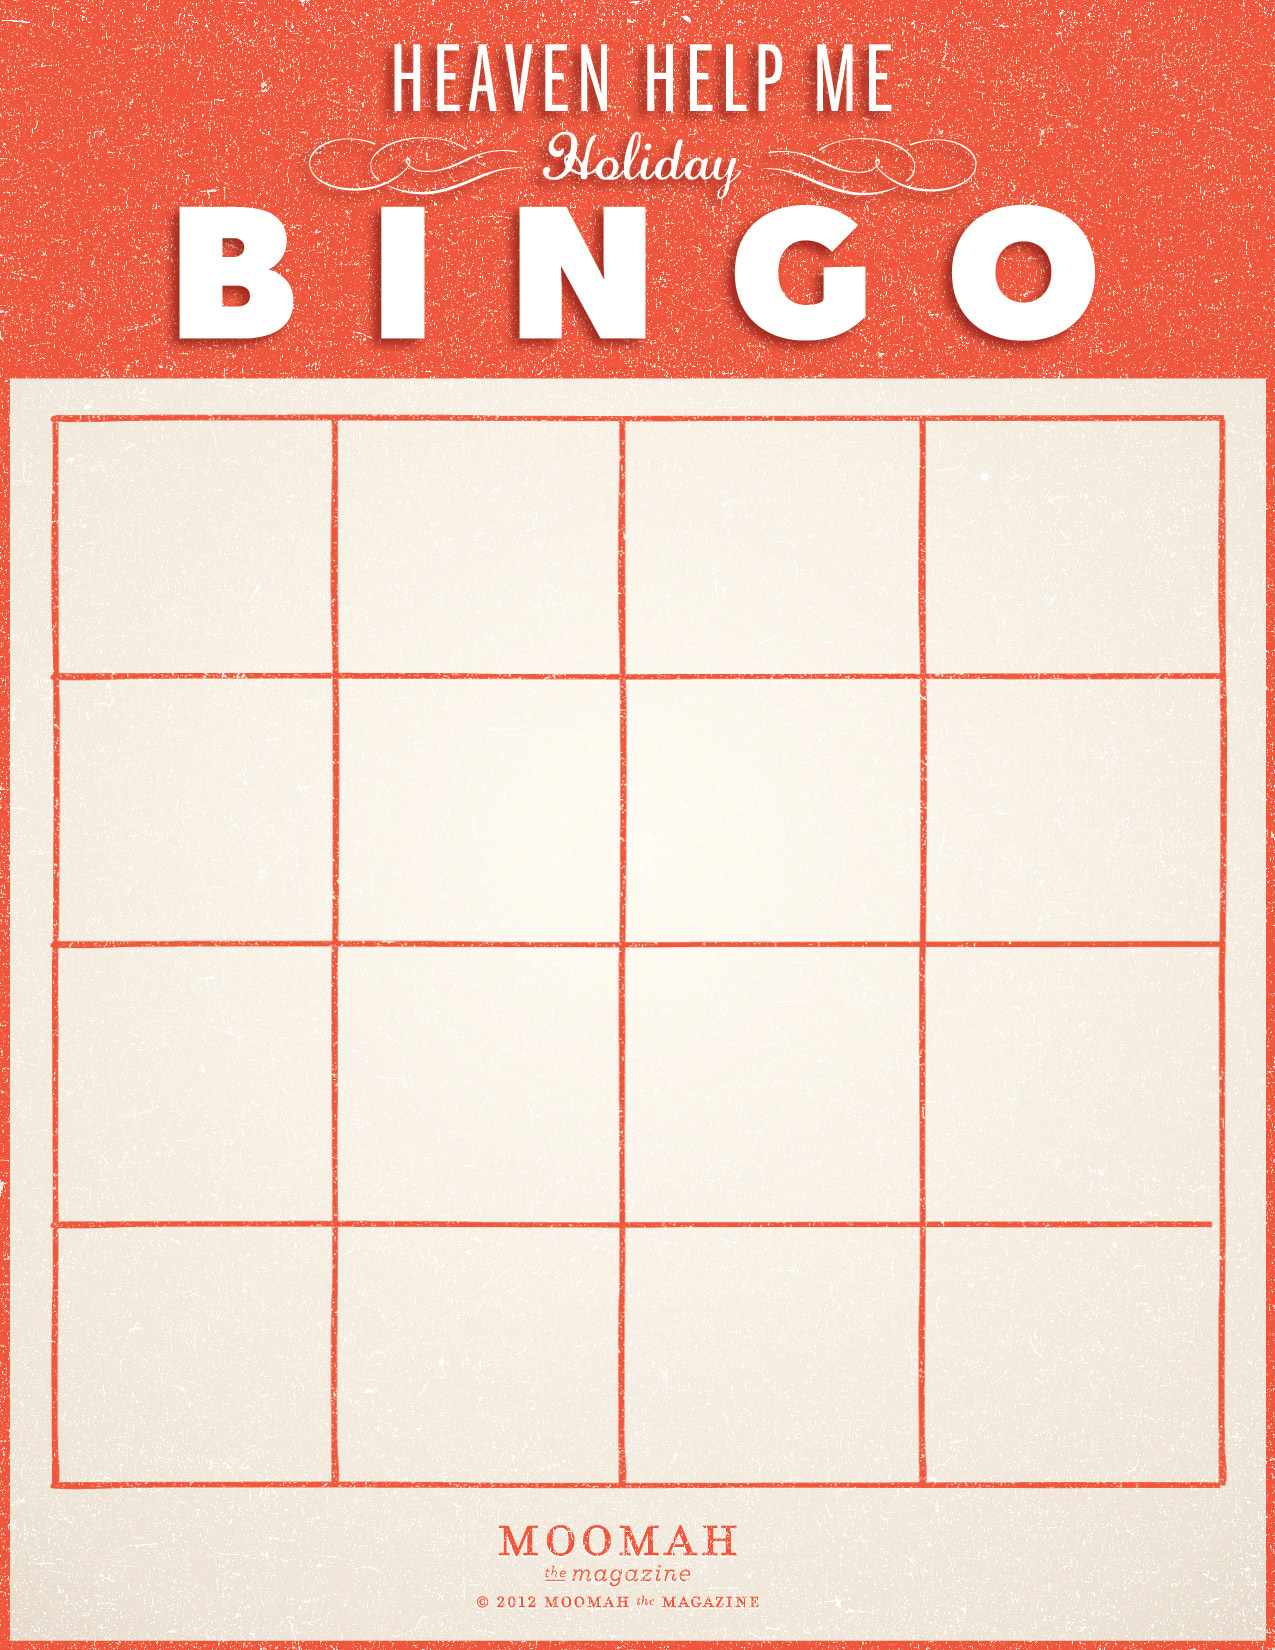 Pin Blank Bingo Board Template on Pinterest